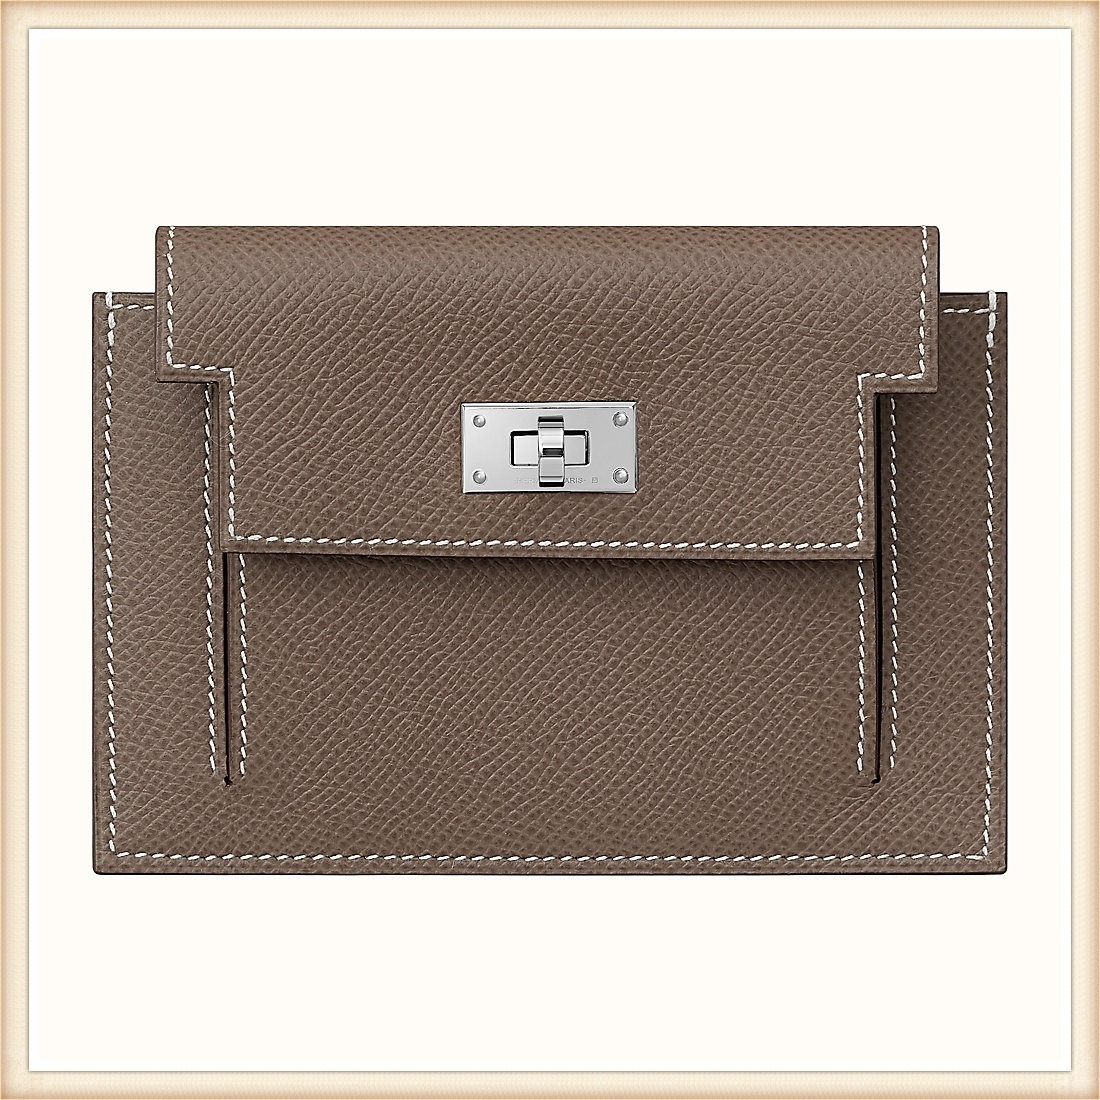 HERMES Kelly Pocket Compact wallet ケリーコンパクト財布 (HERMES/折りたたみ財布) H079001CK18